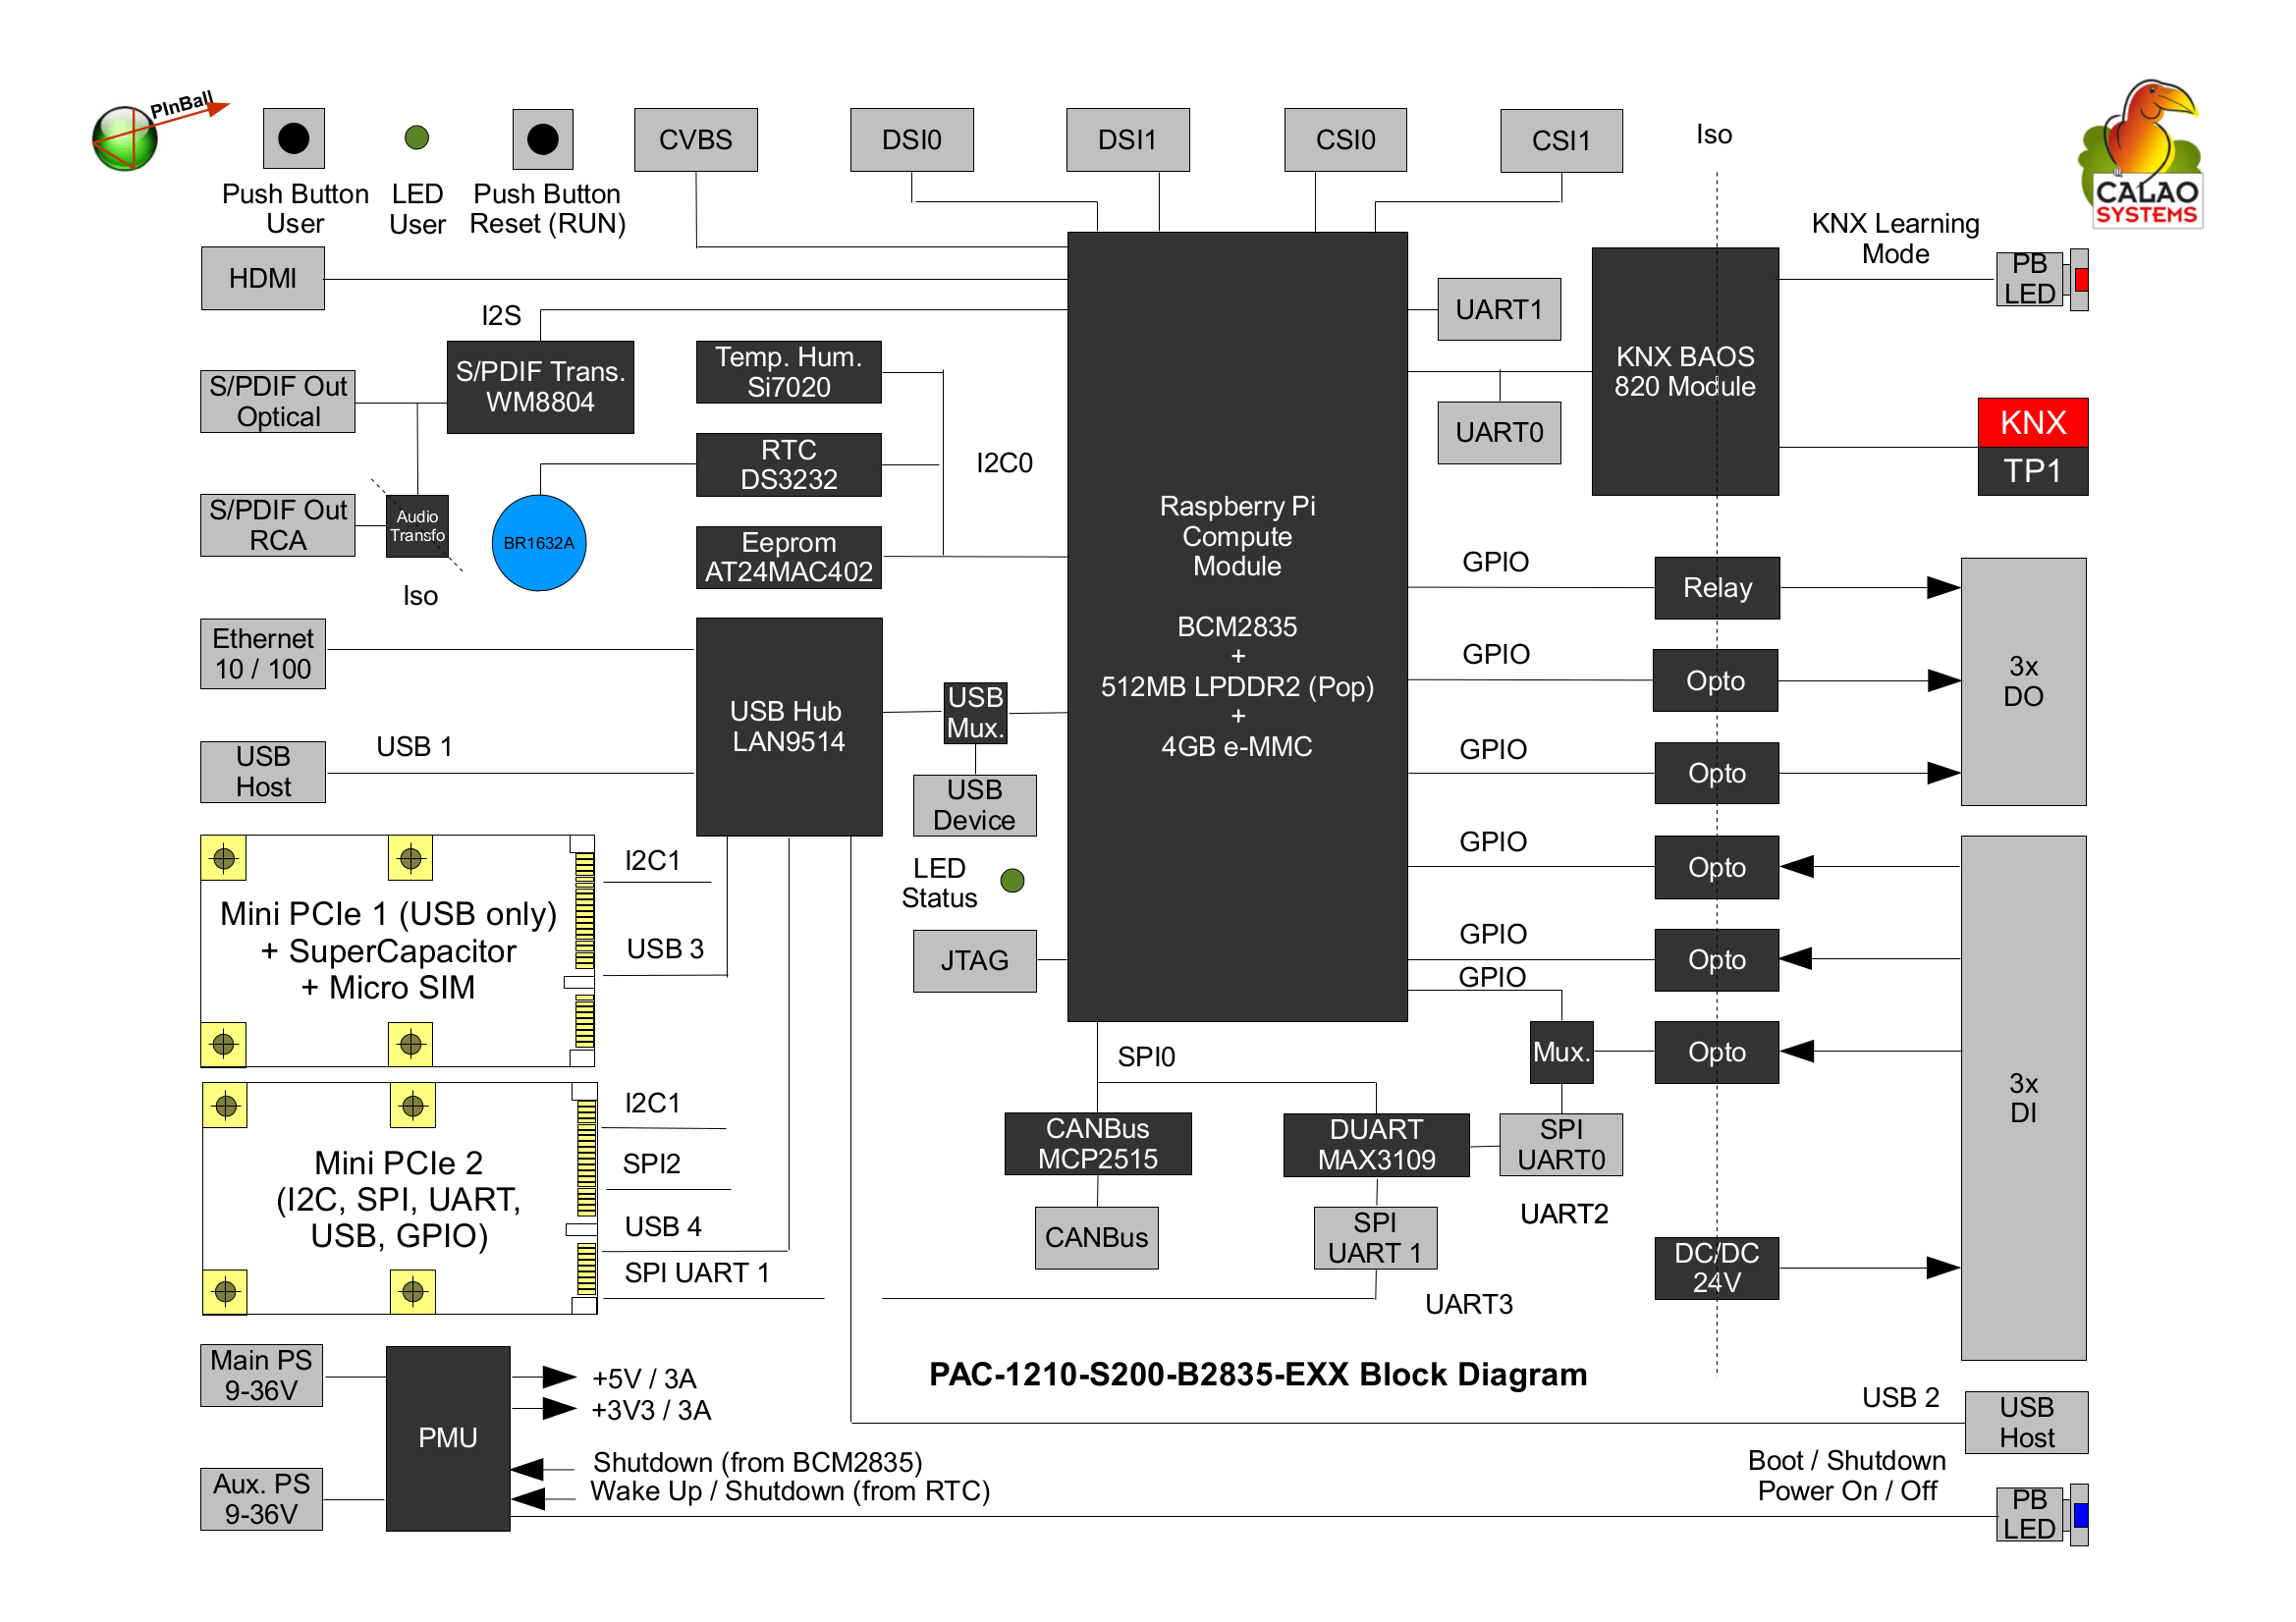 raspberry pi 3 model b wiring diagram hopkins 20100 calao systems introduces pinball industrial board based on